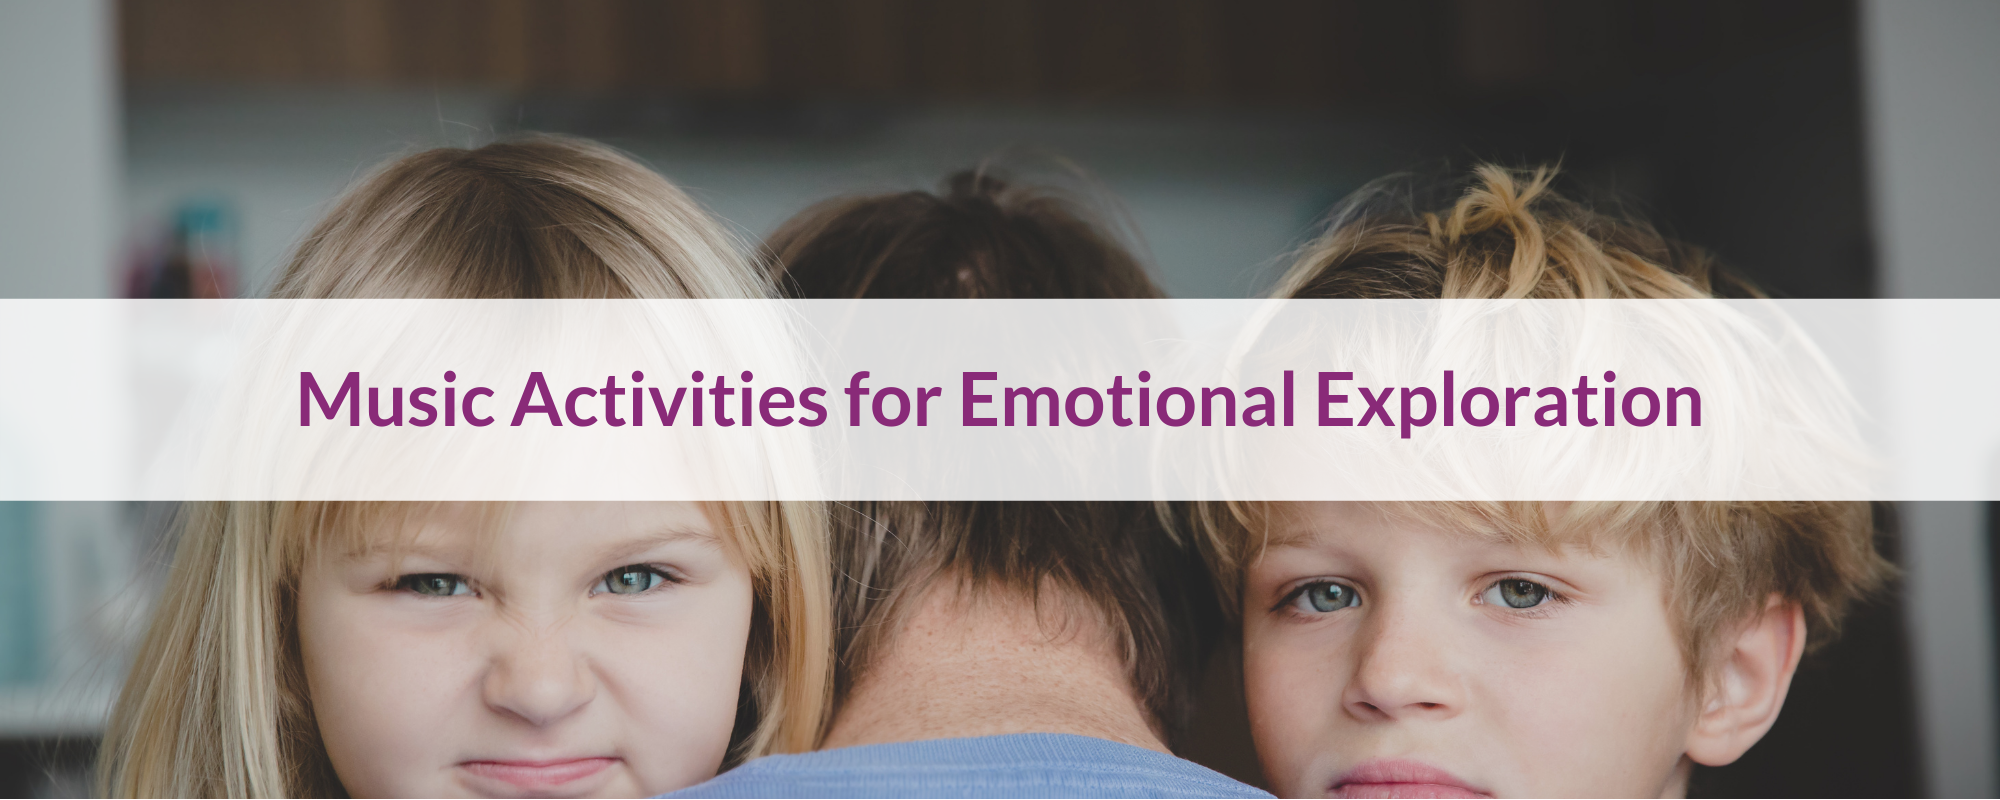 Music Activities for Emotional Exploration and Management